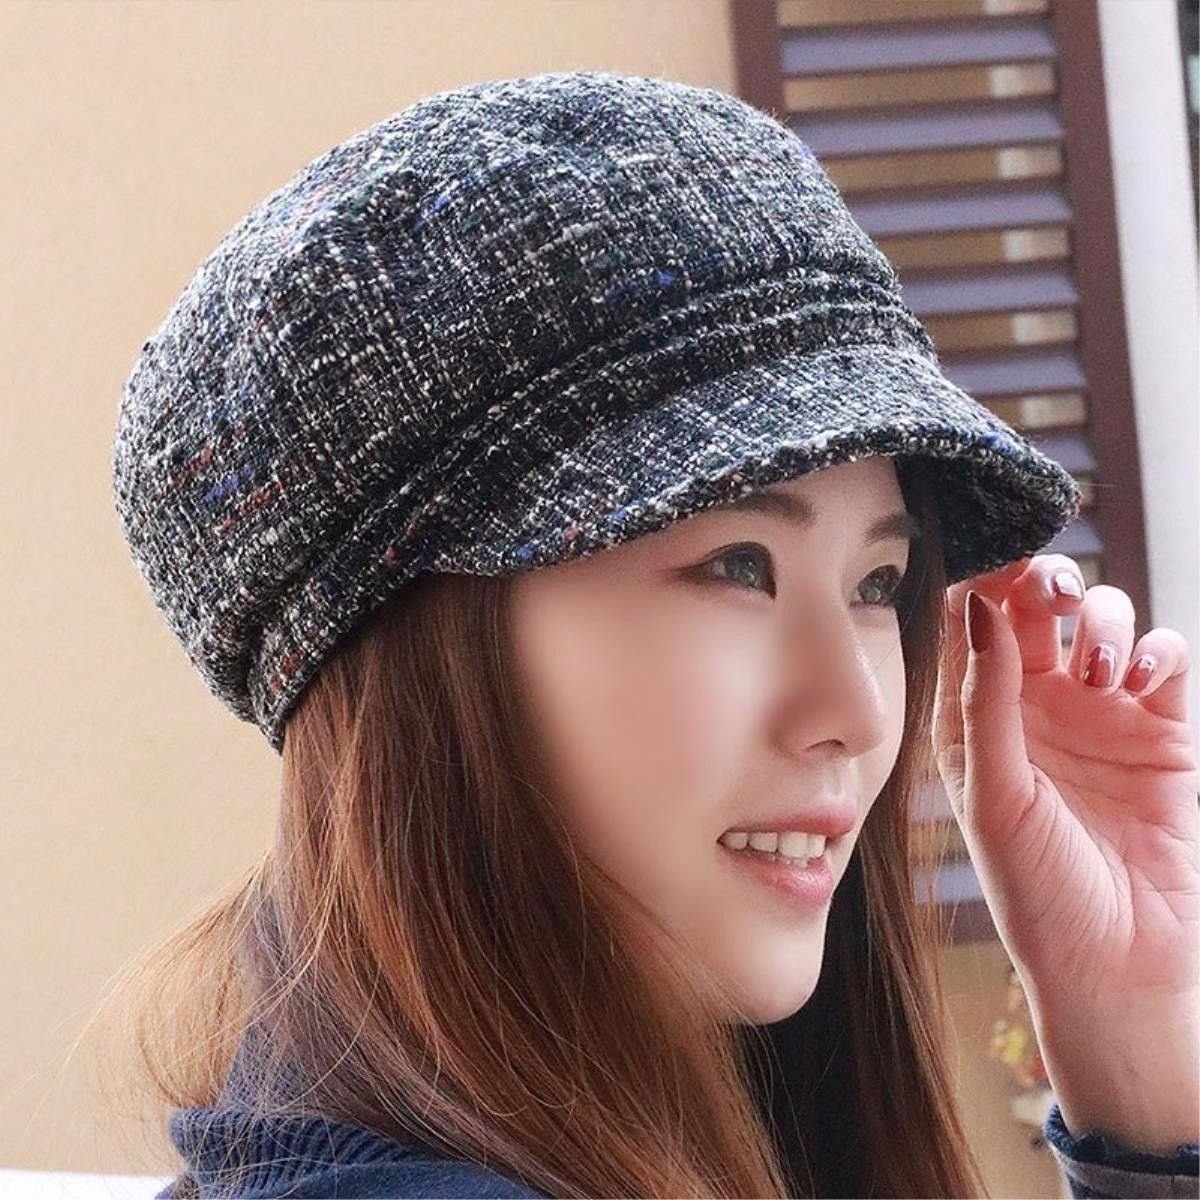 LONFENN Ladies Women Hats Textured Beret Cap Fashion Cap In The Fall Of Yuan Shu Flat Top Gray/A